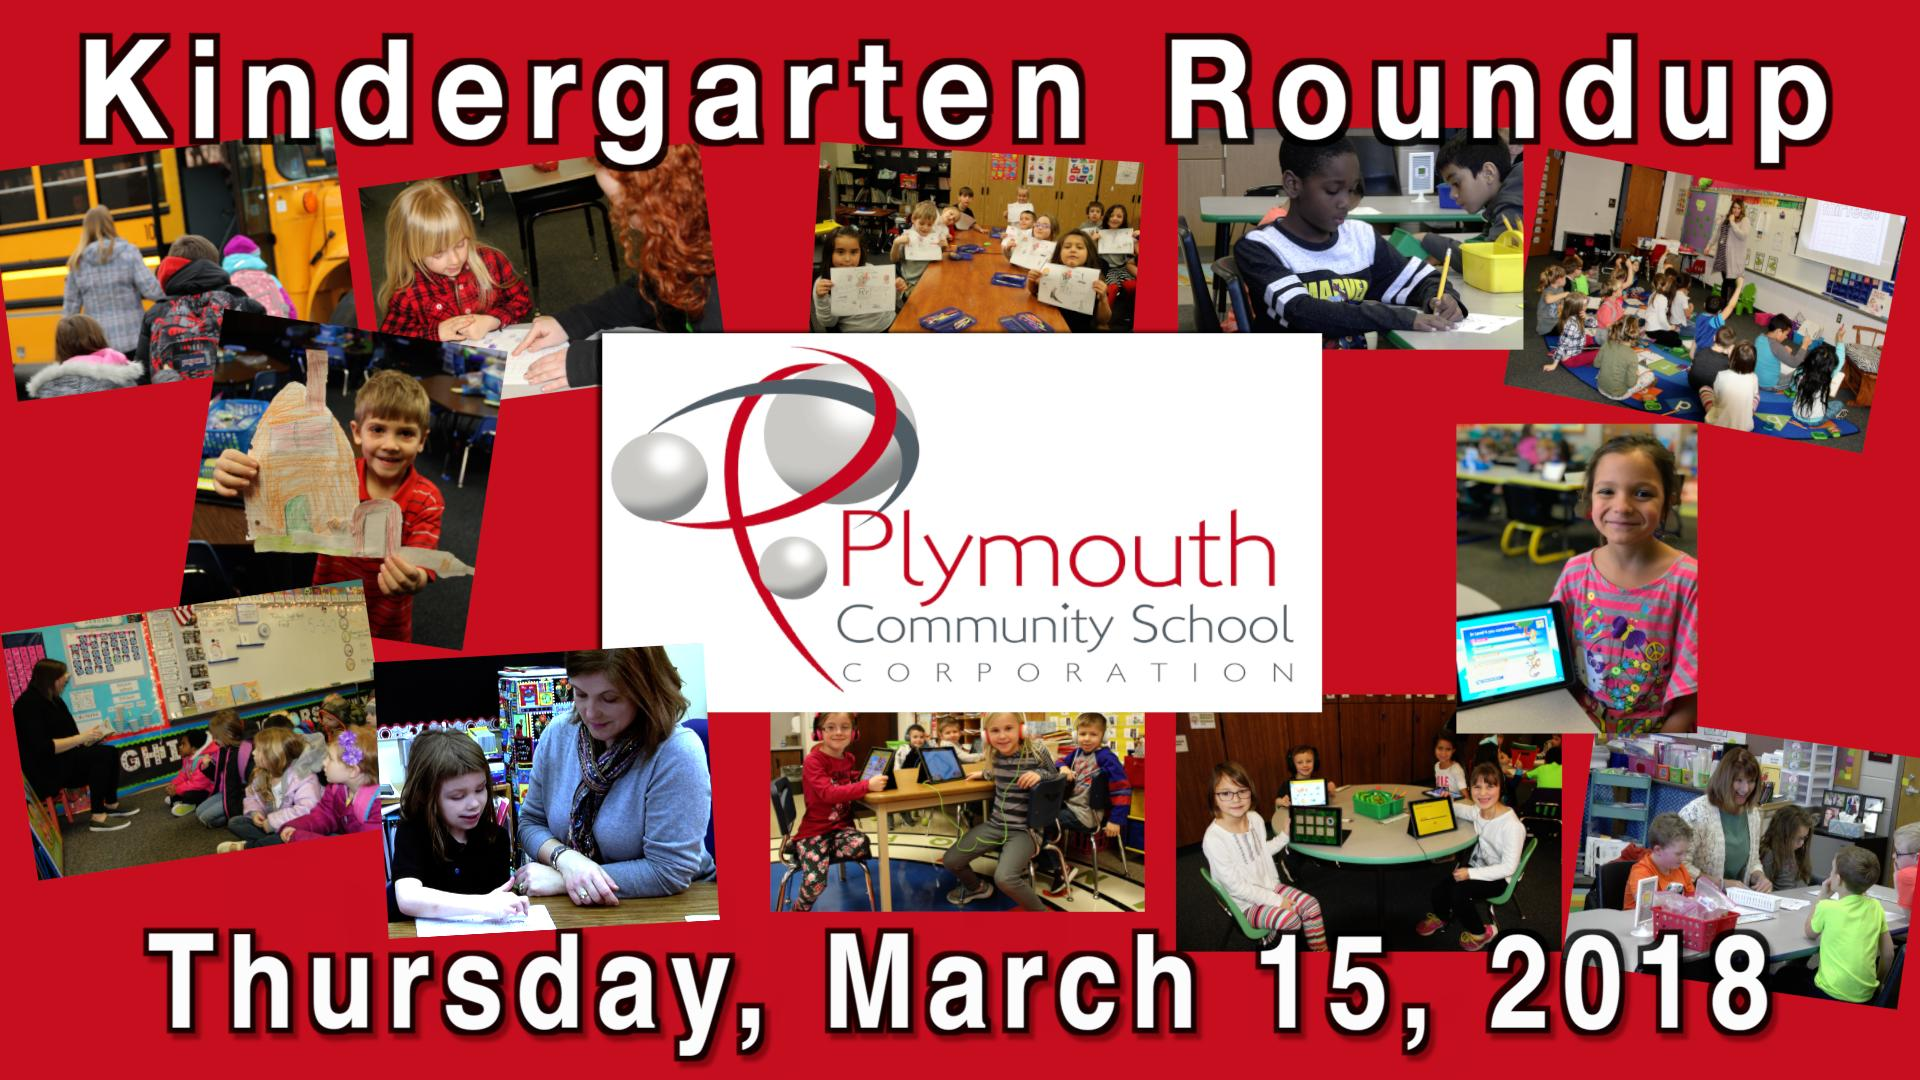 Kindergarten Roundup Thursday, March 15, 2018 with PCSC logo and pictures of students